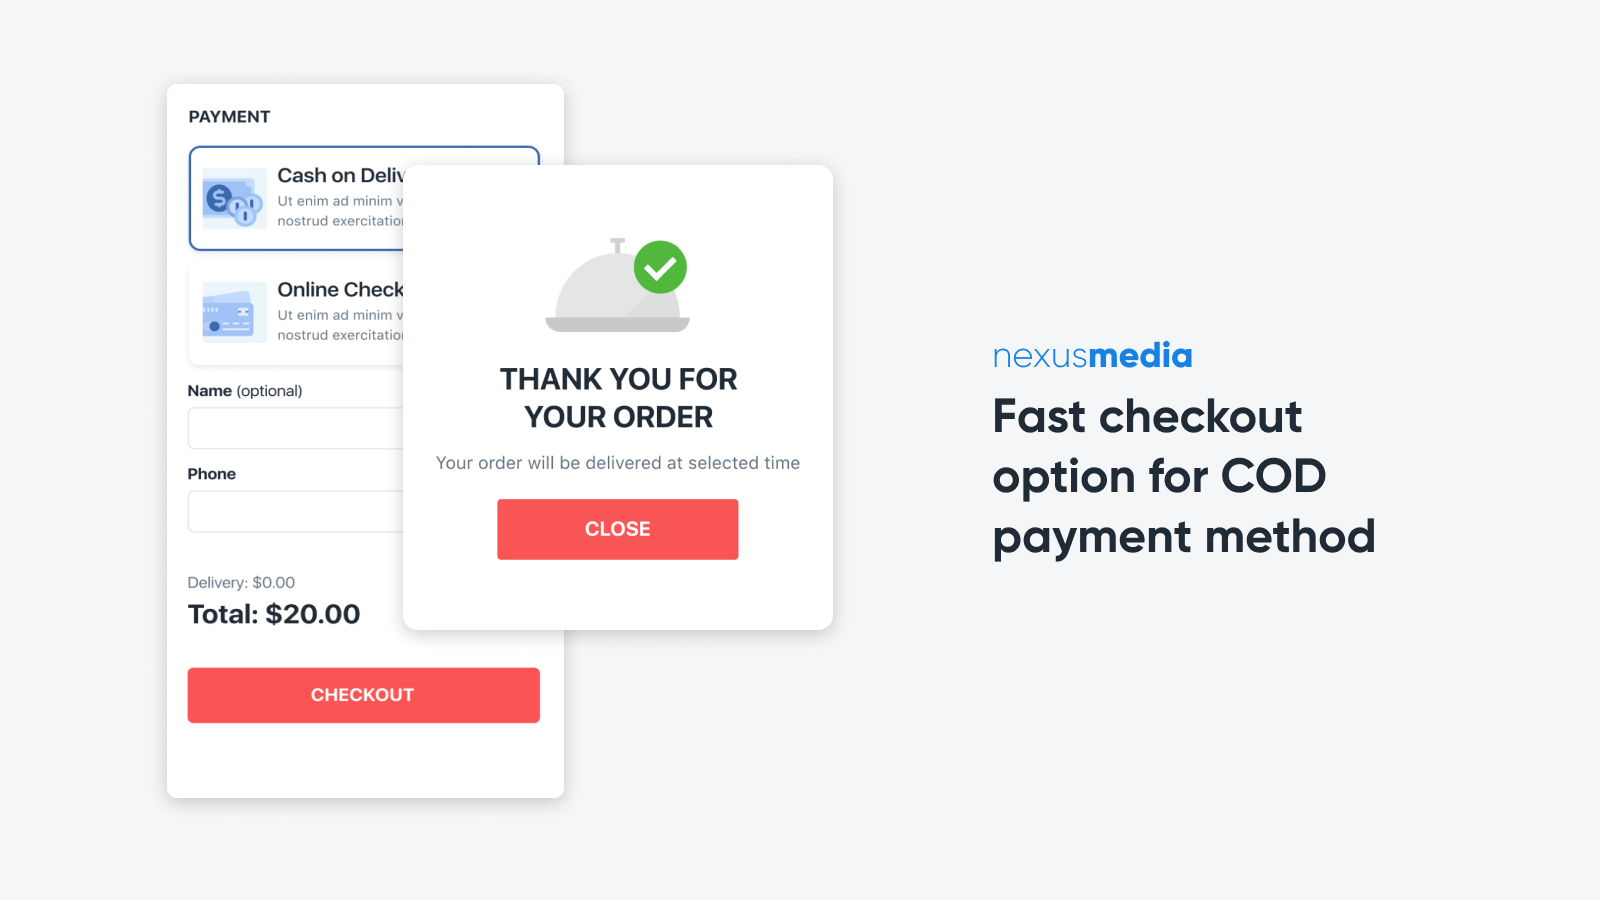 Fast checkout option for COD payment method